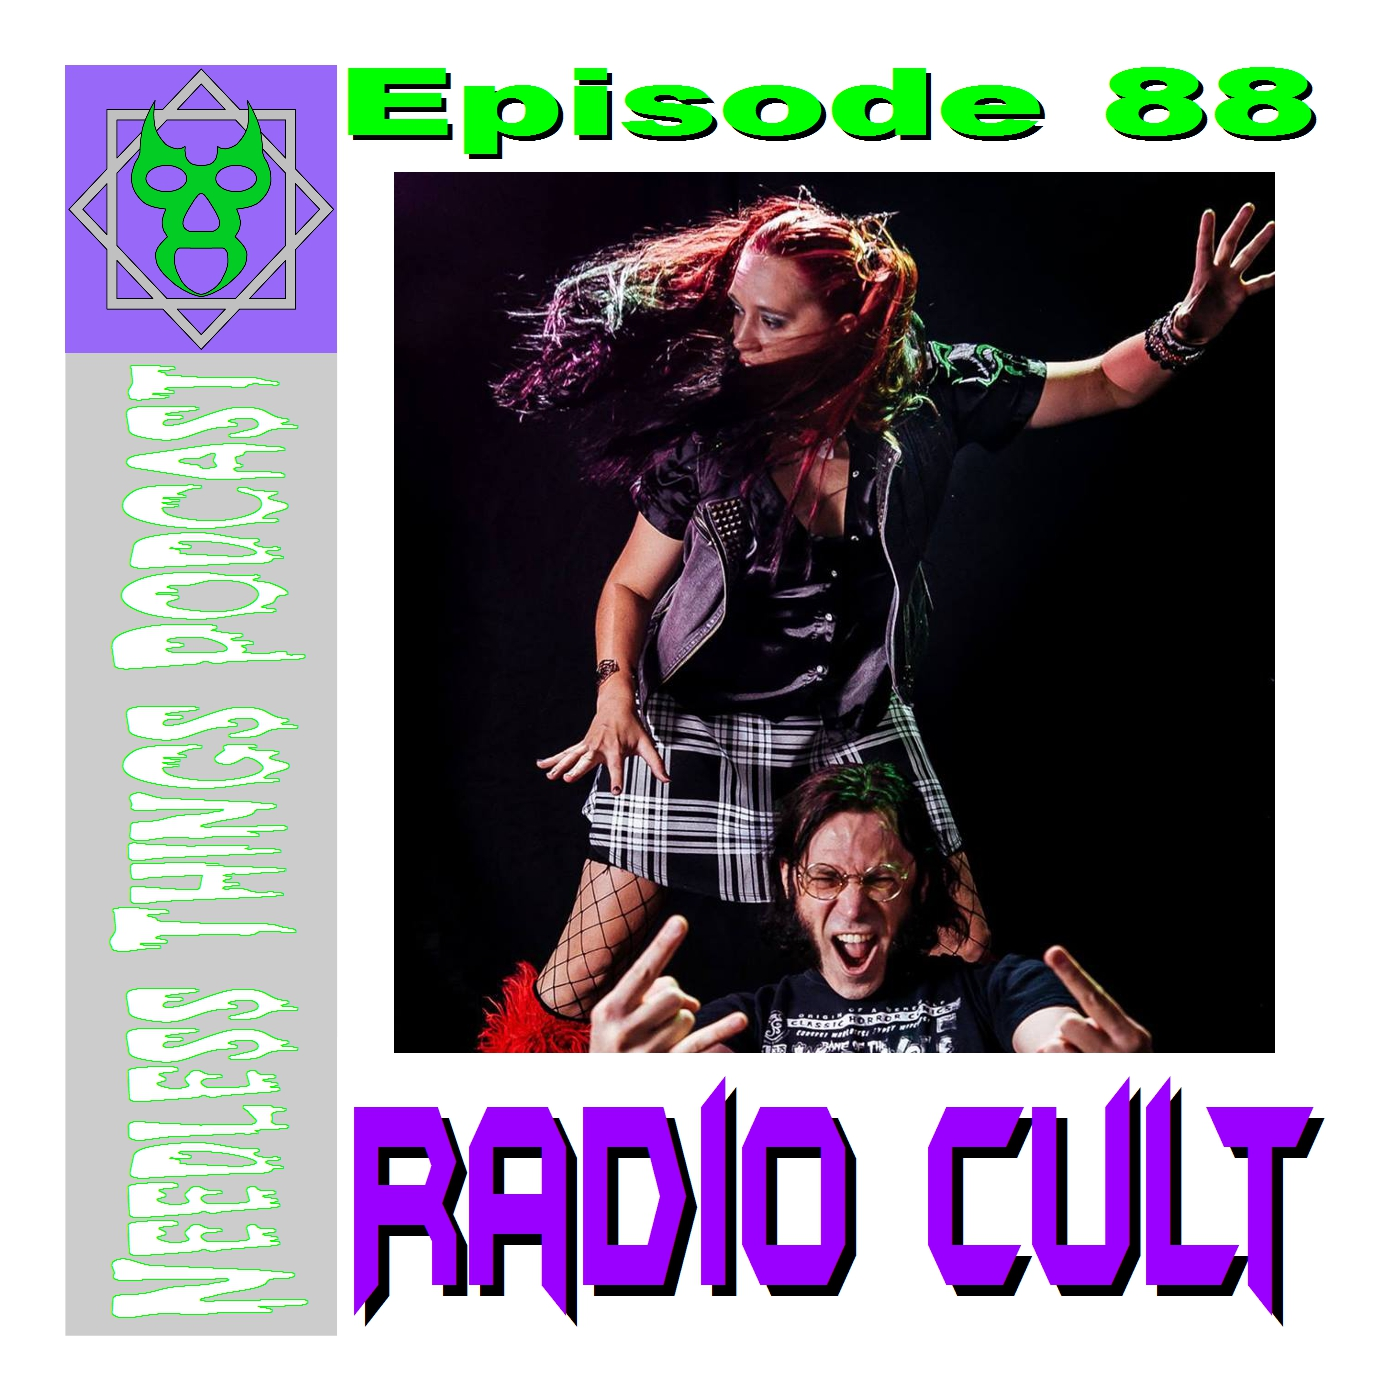 Needless Things Podcast 88 – Radio Cult!